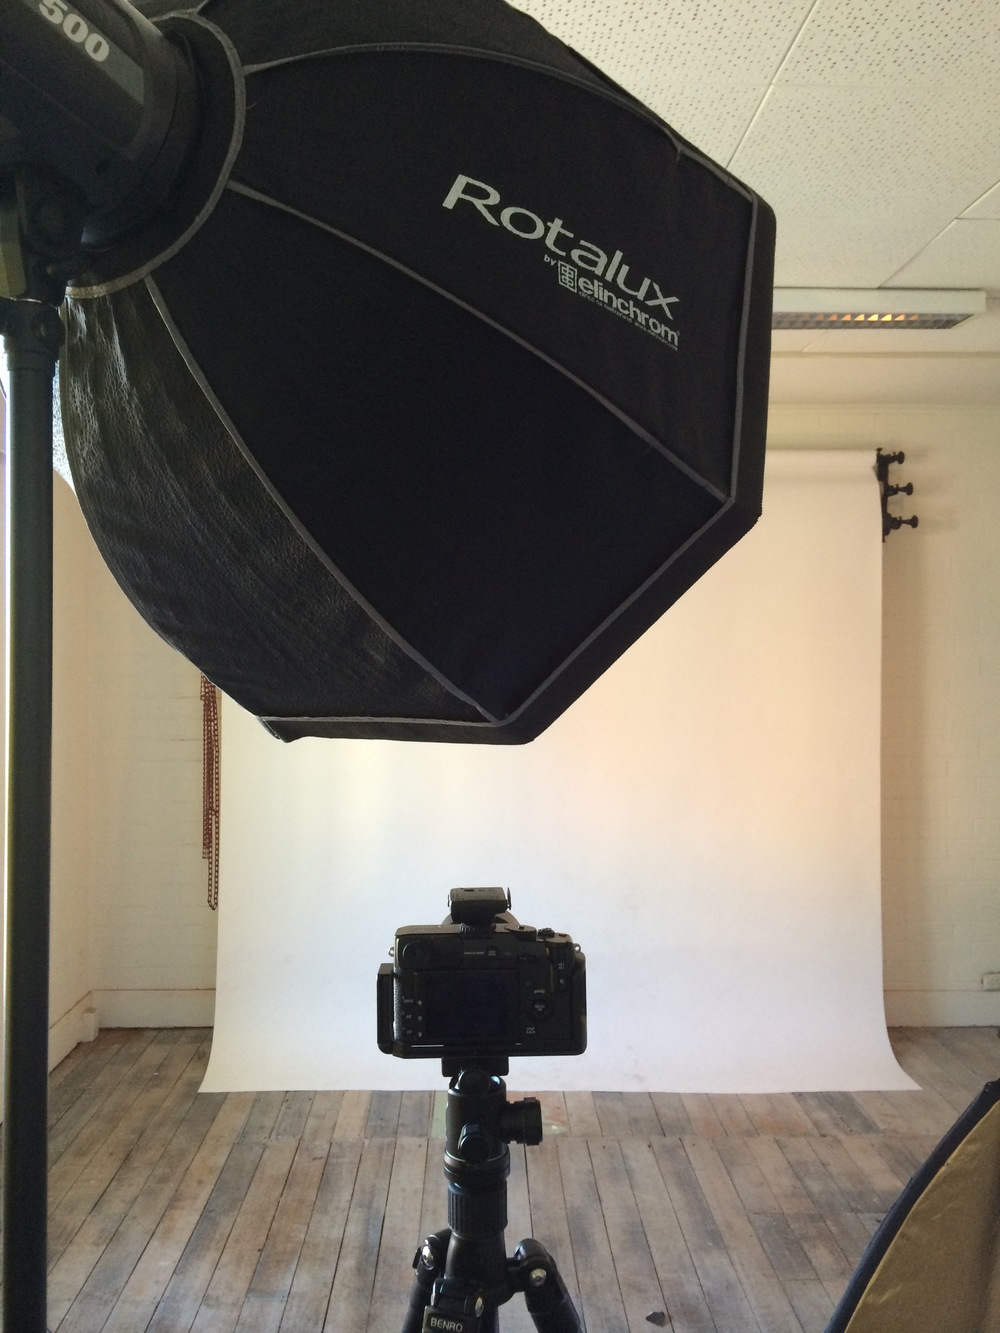 I love the 70cm Elinchrom Rotalux Deep Octa. such a versatile little mod!